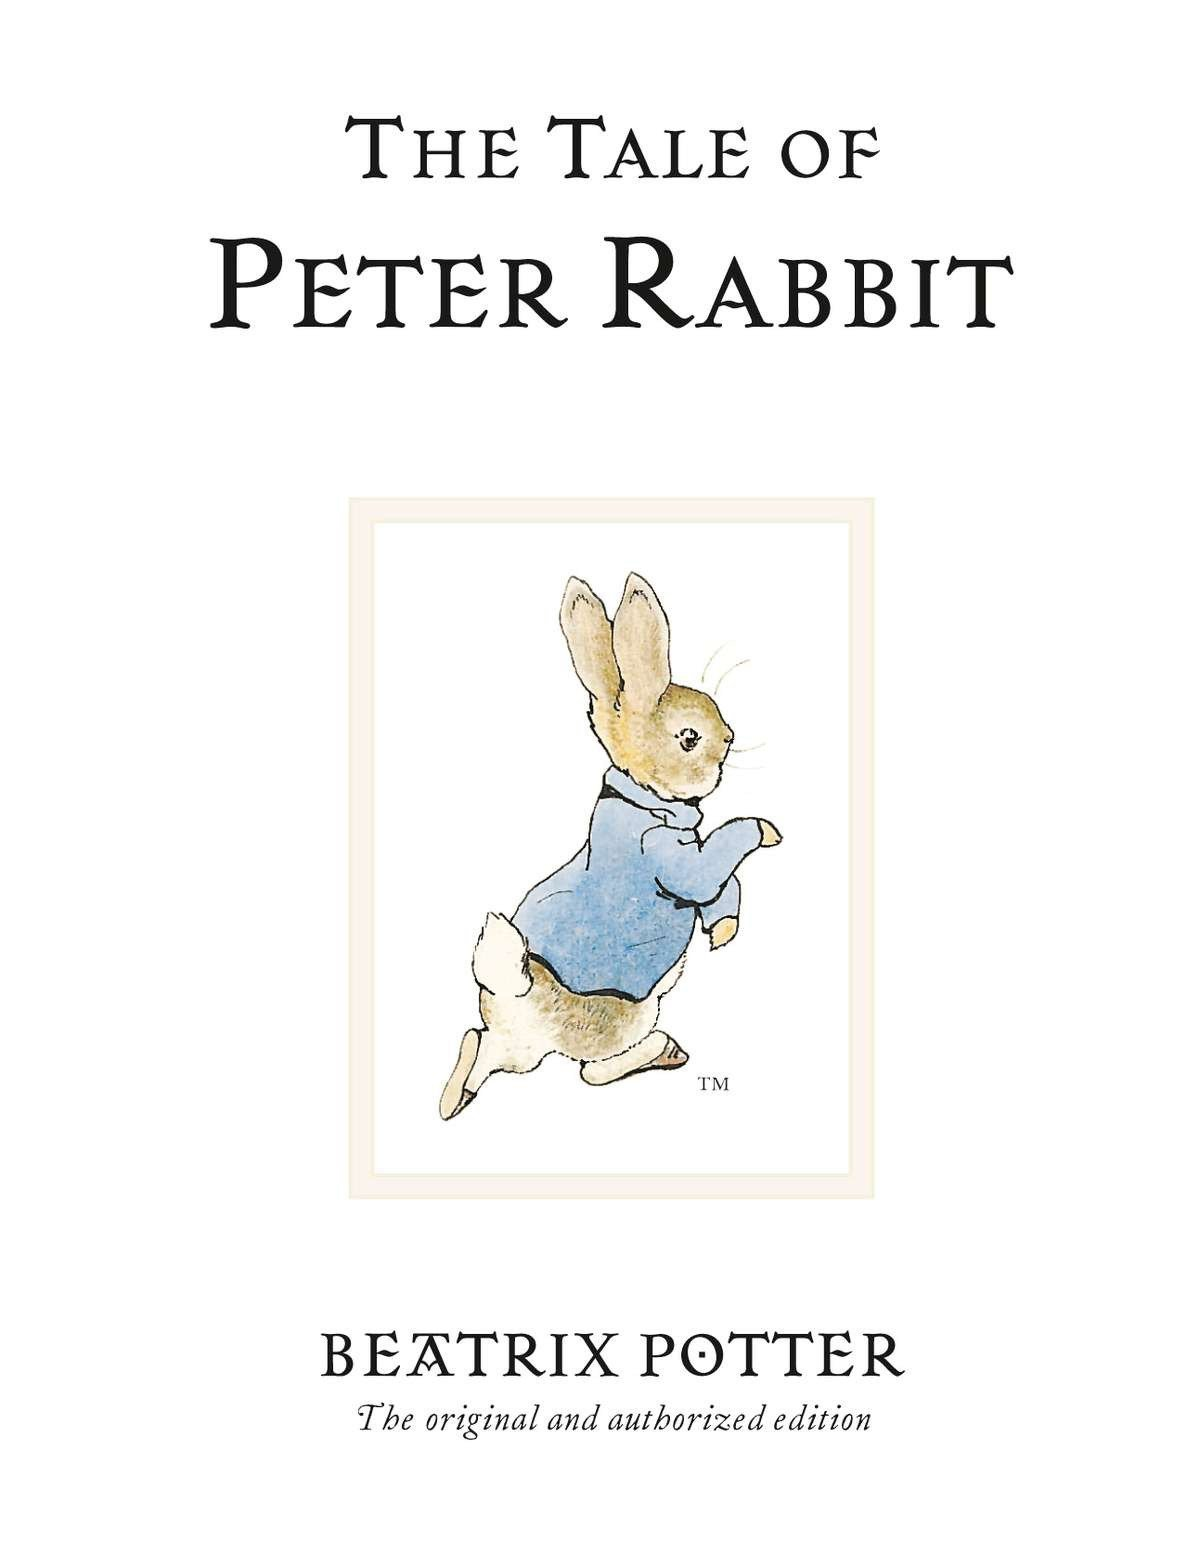 The Tale Of Peter Rabbit (Beatrix Potter Originals): Amazon.es ...